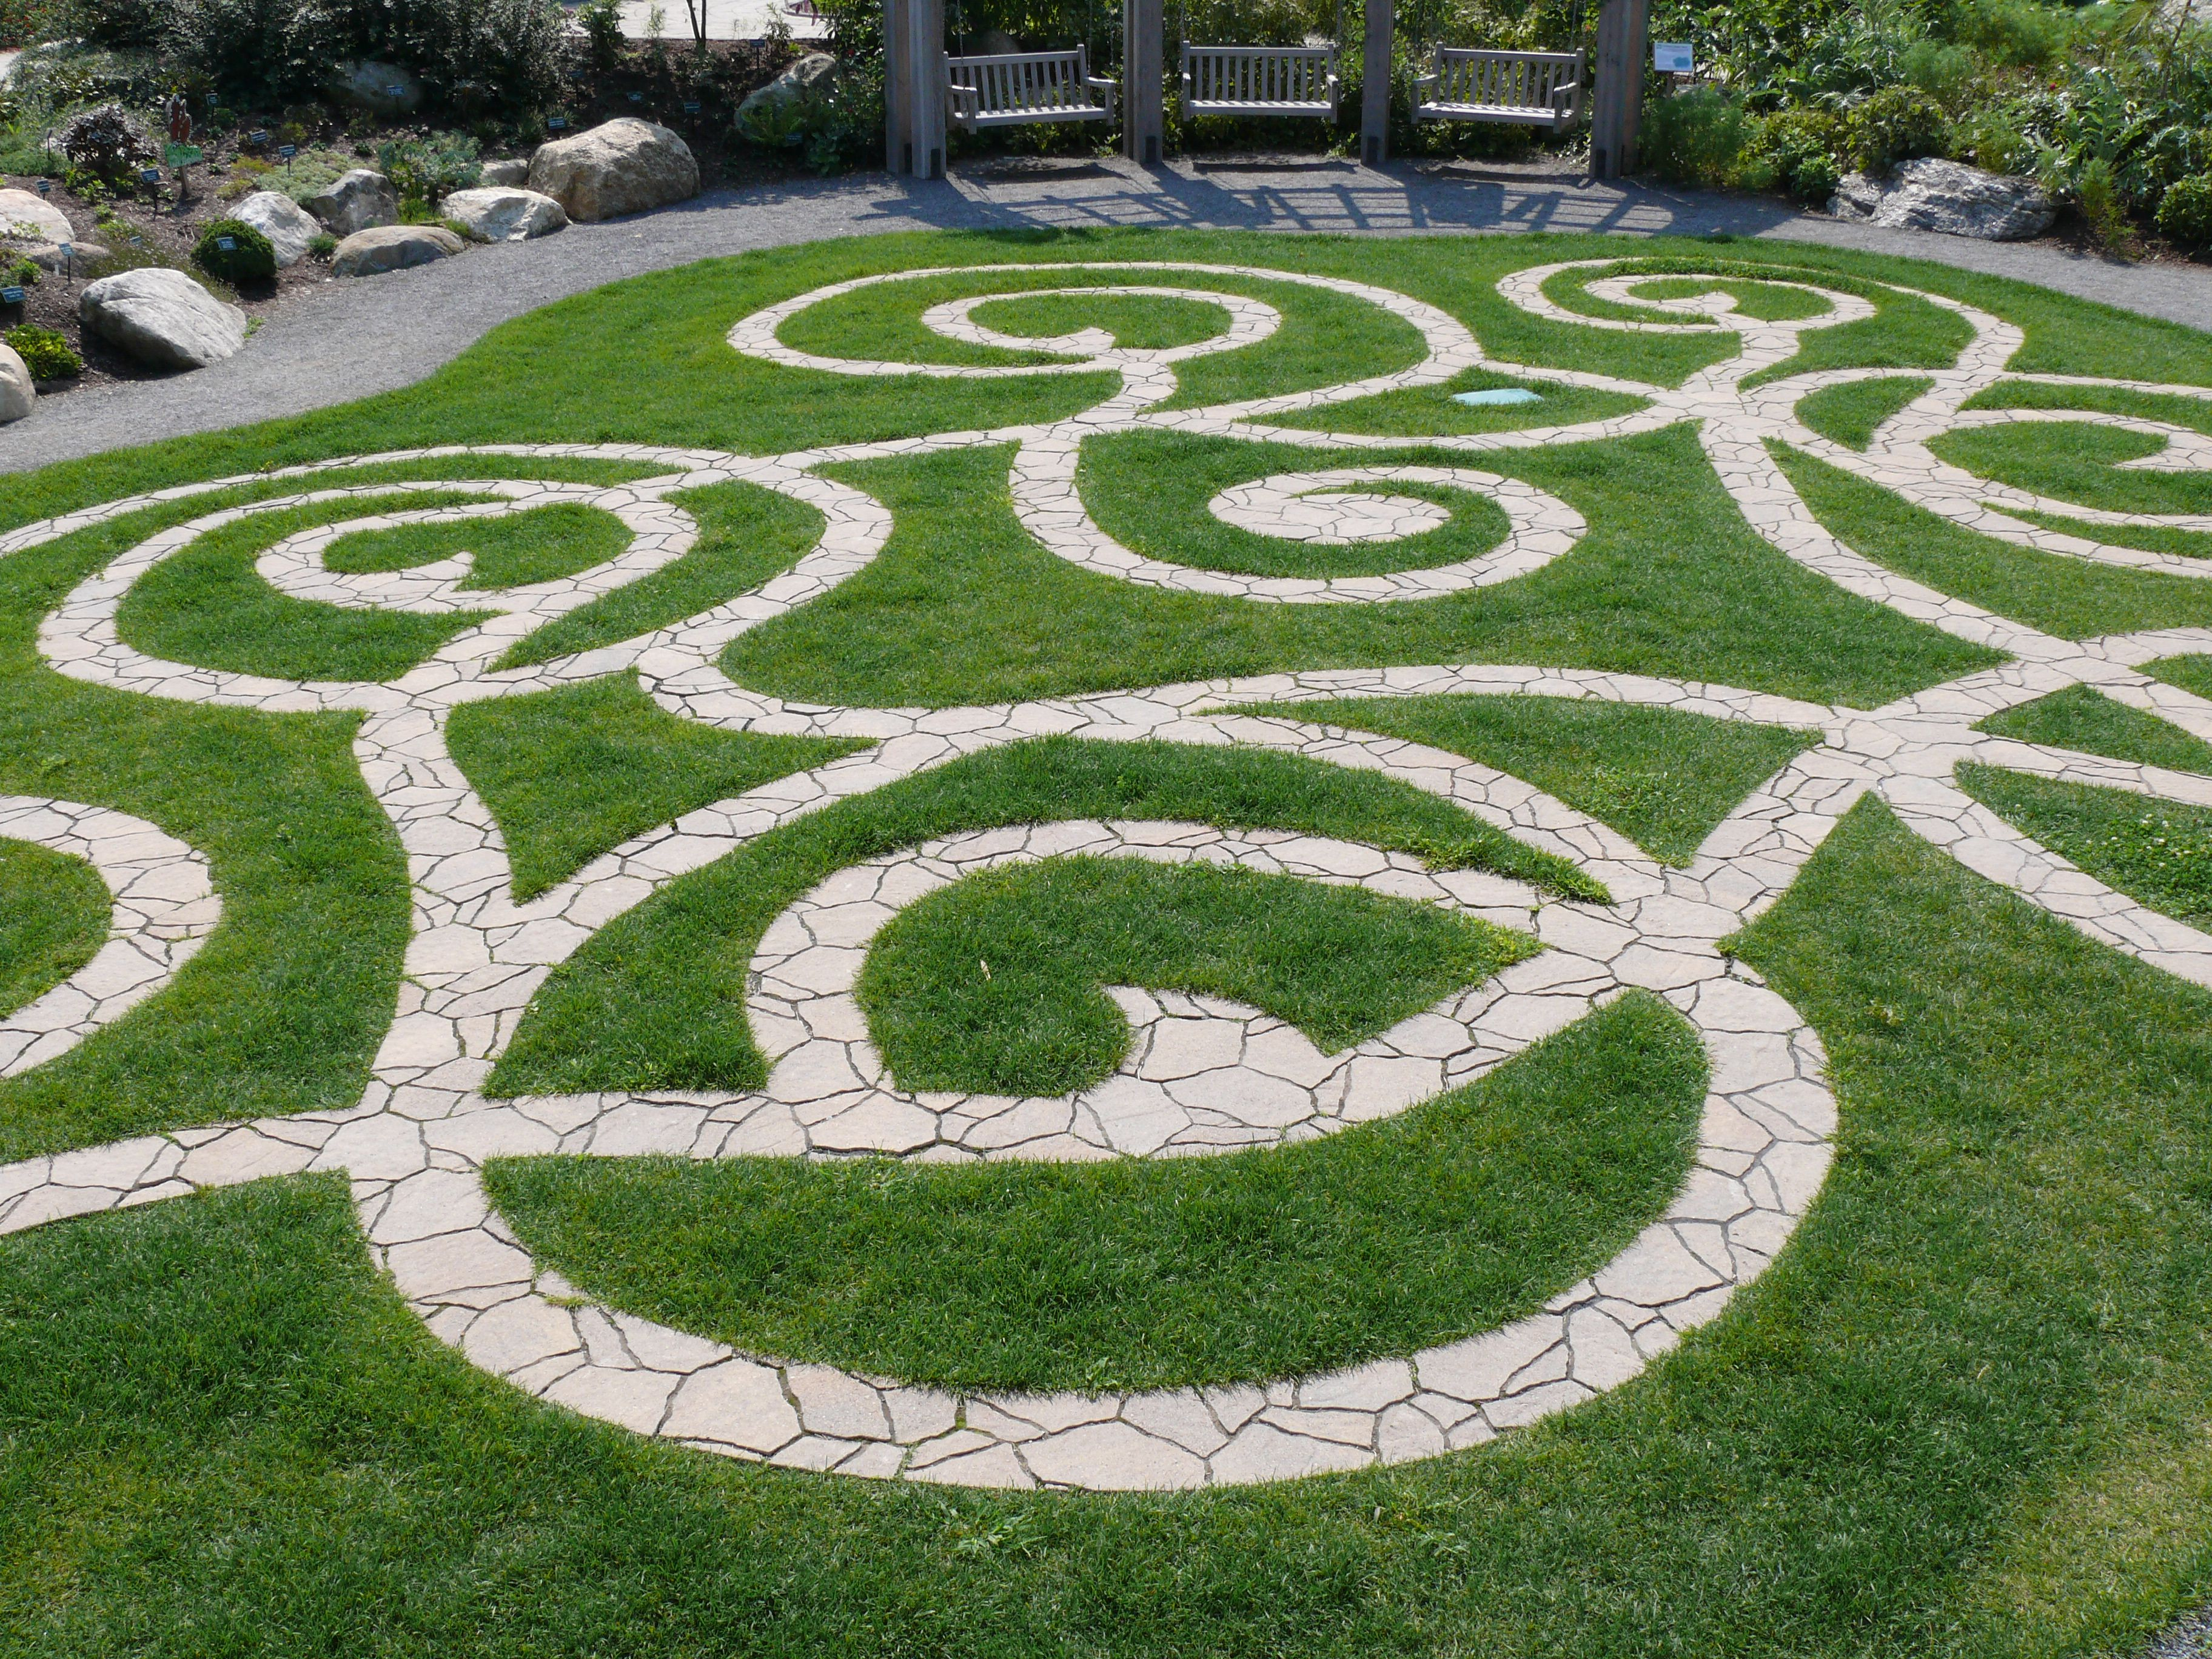 Labyrinth unique garden ideas pinterest for Unique garden designs